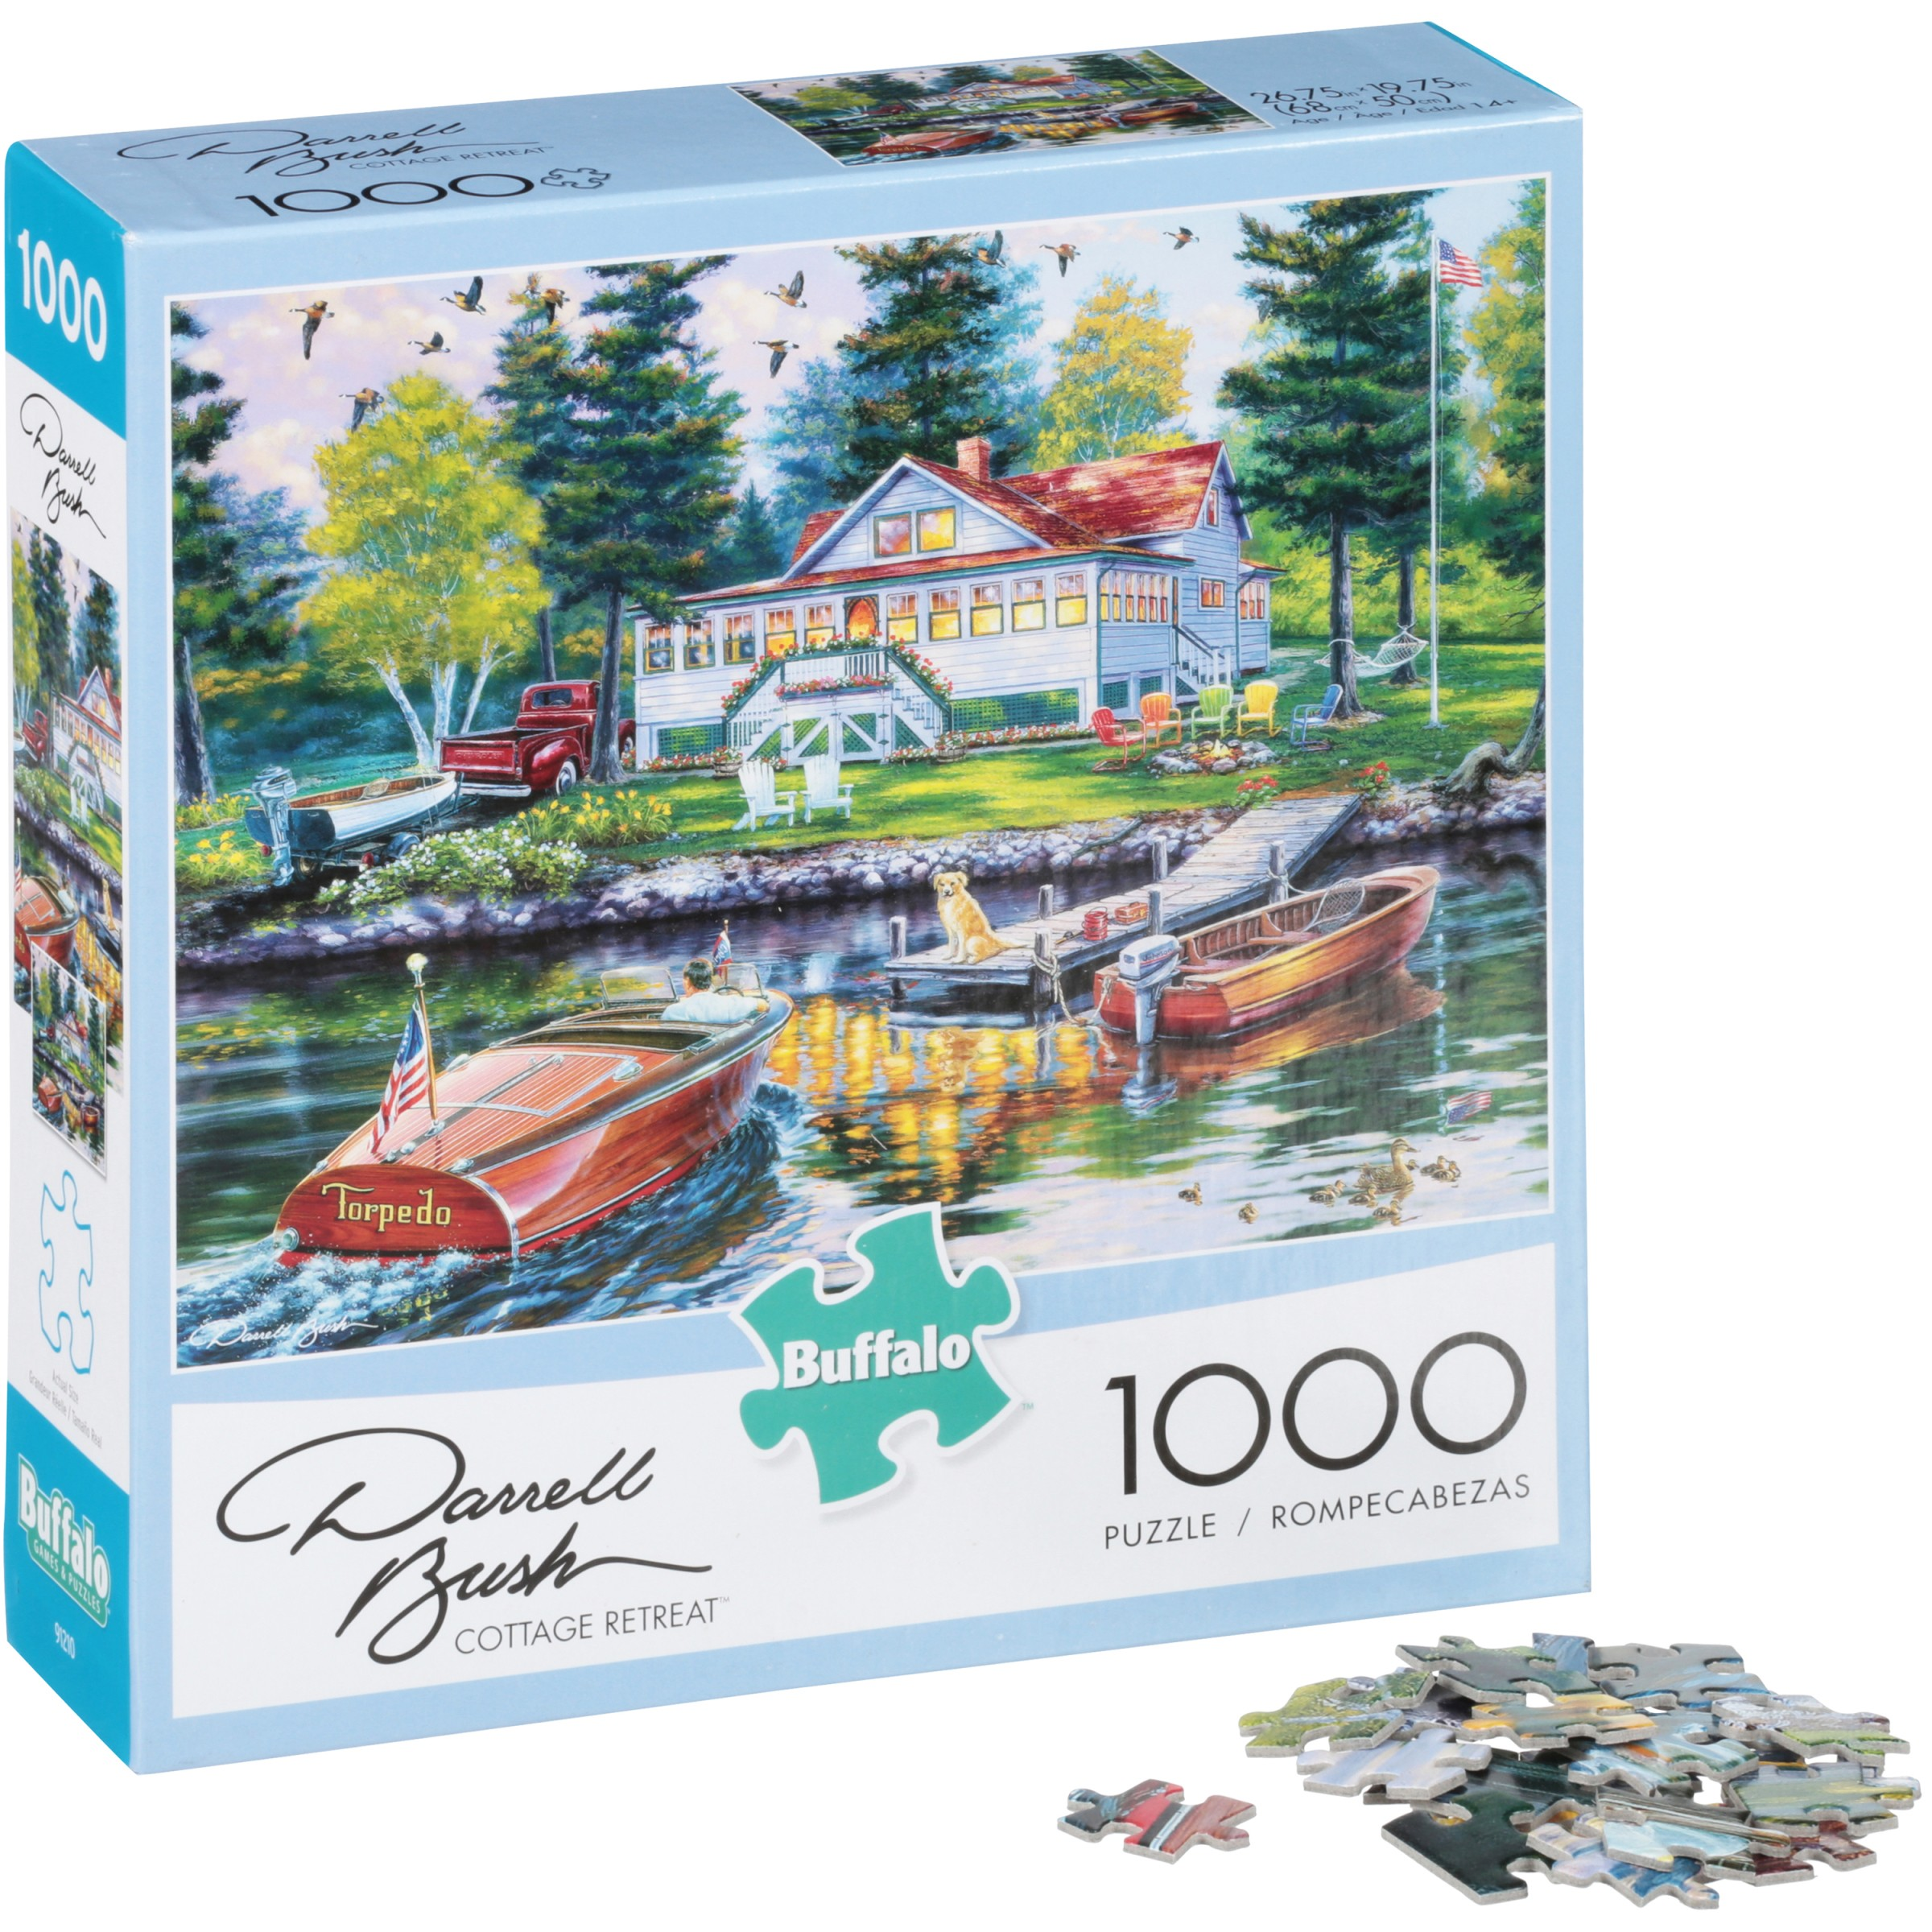 Buffalo Darrell Bush Cottage Retreat 1000 pc Puzzle by Buffalo Games, LLC